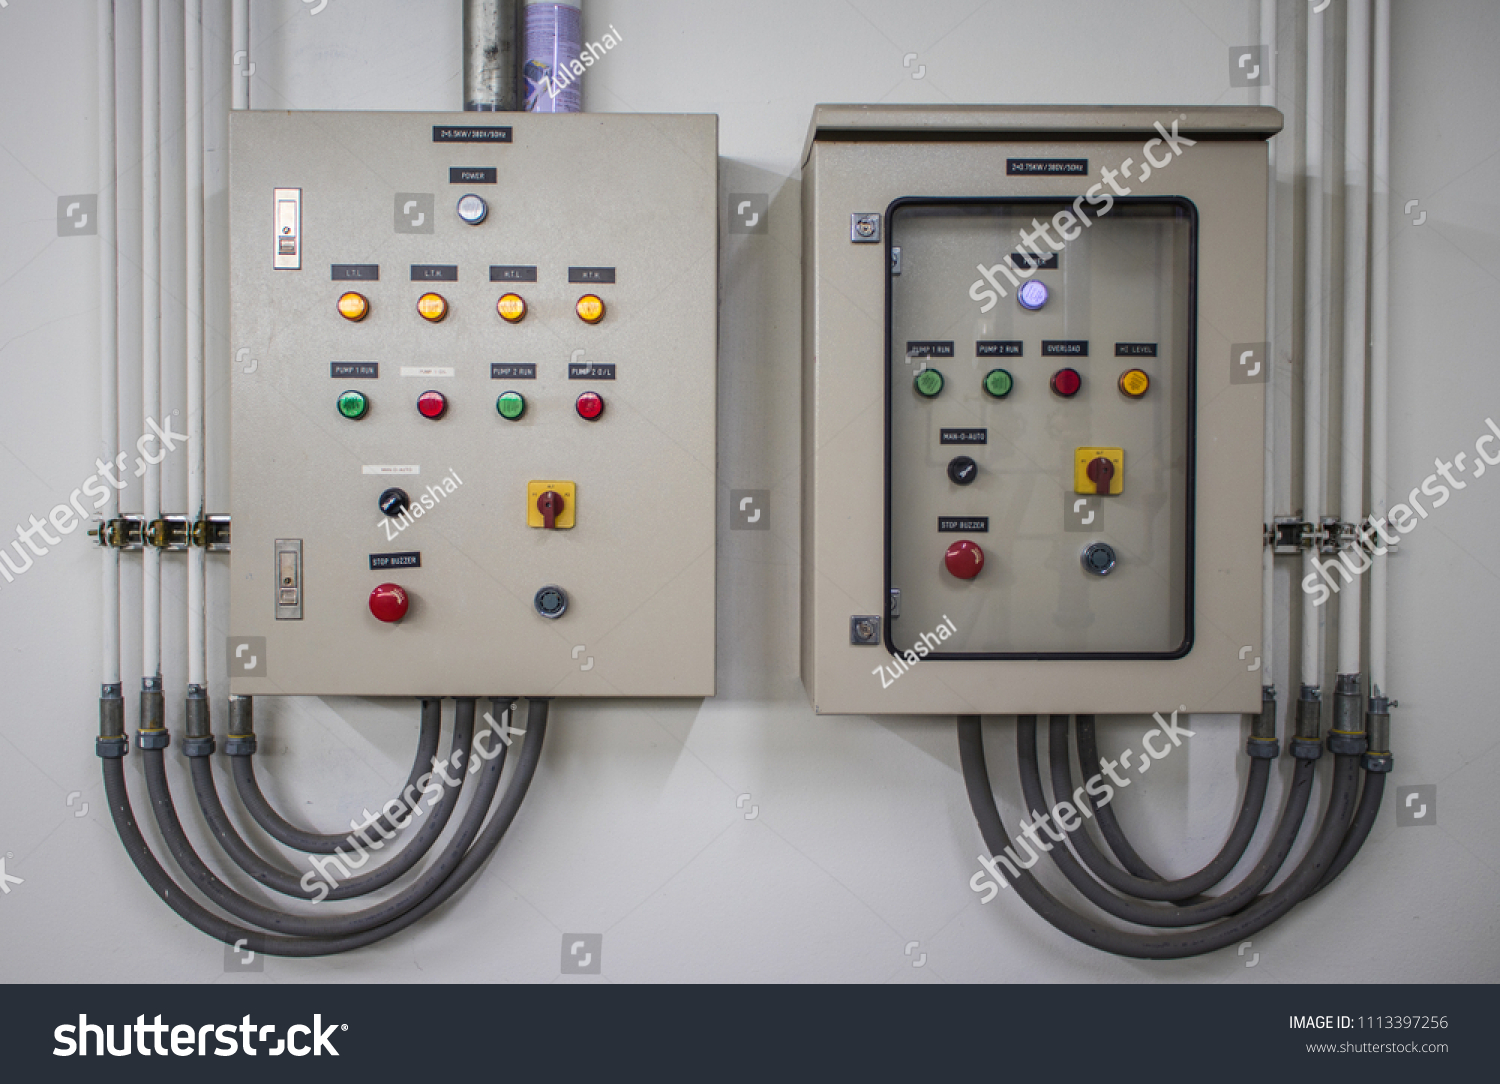 hight resolution of electric control panel cabinets with the many color buttons for controller the electrical system circuit is